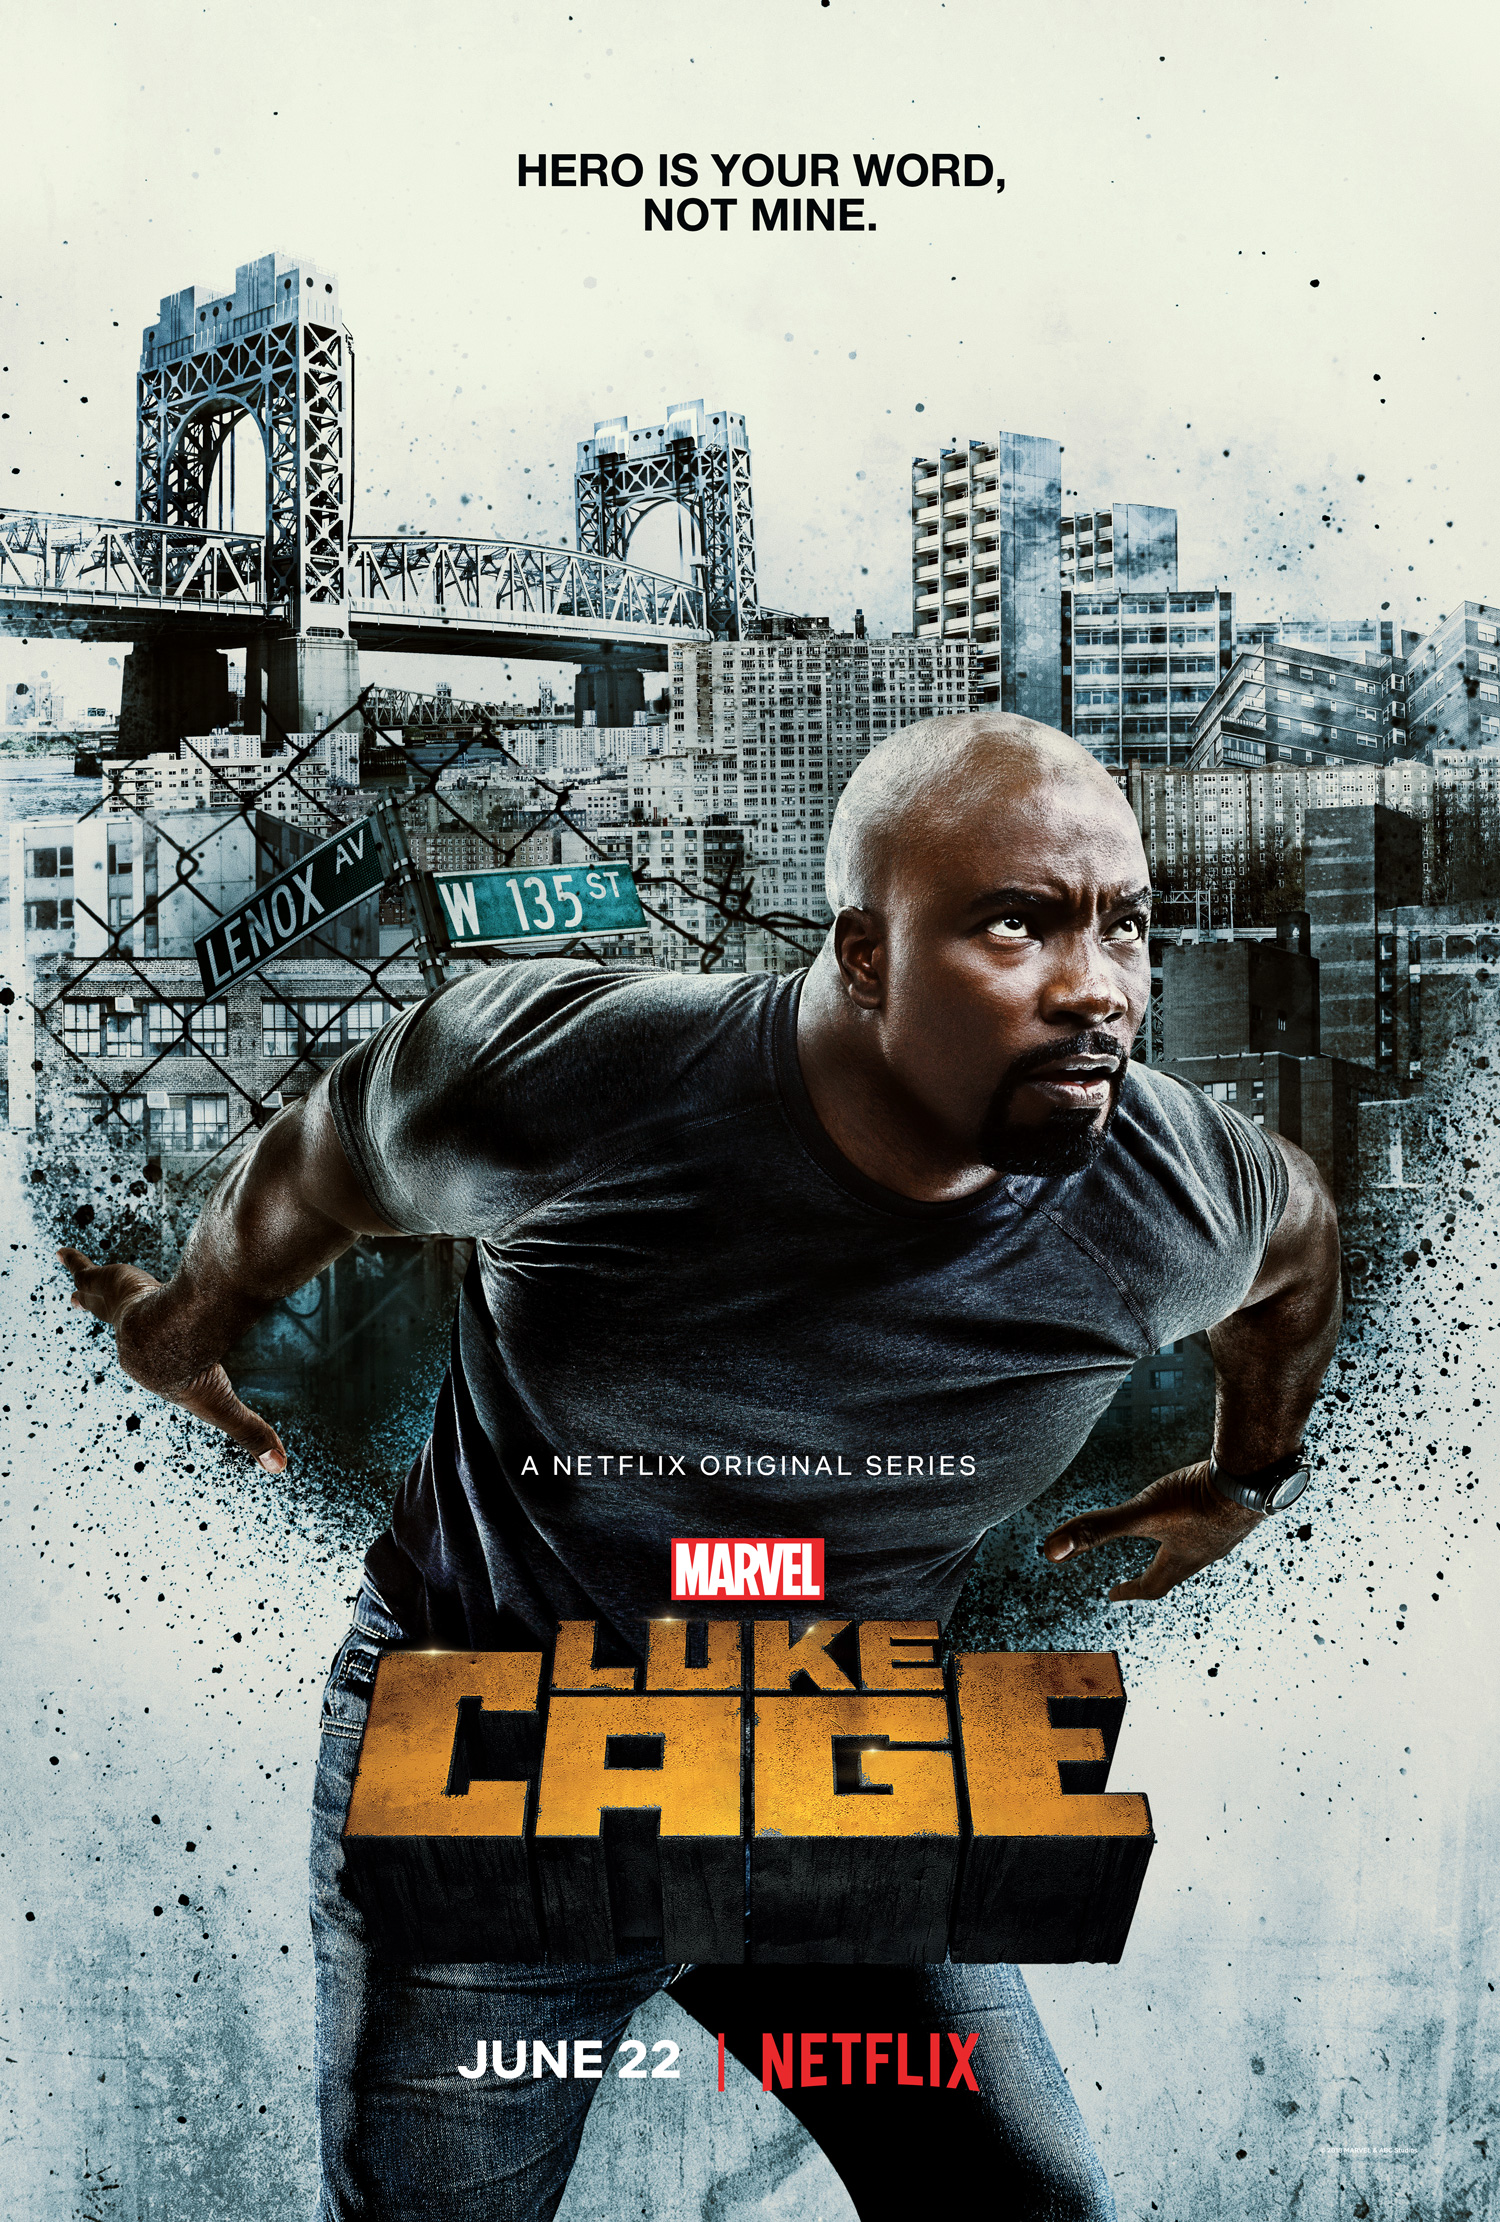 Luke Cage Season 2 spoiler-free review: the hero of Harlem is back